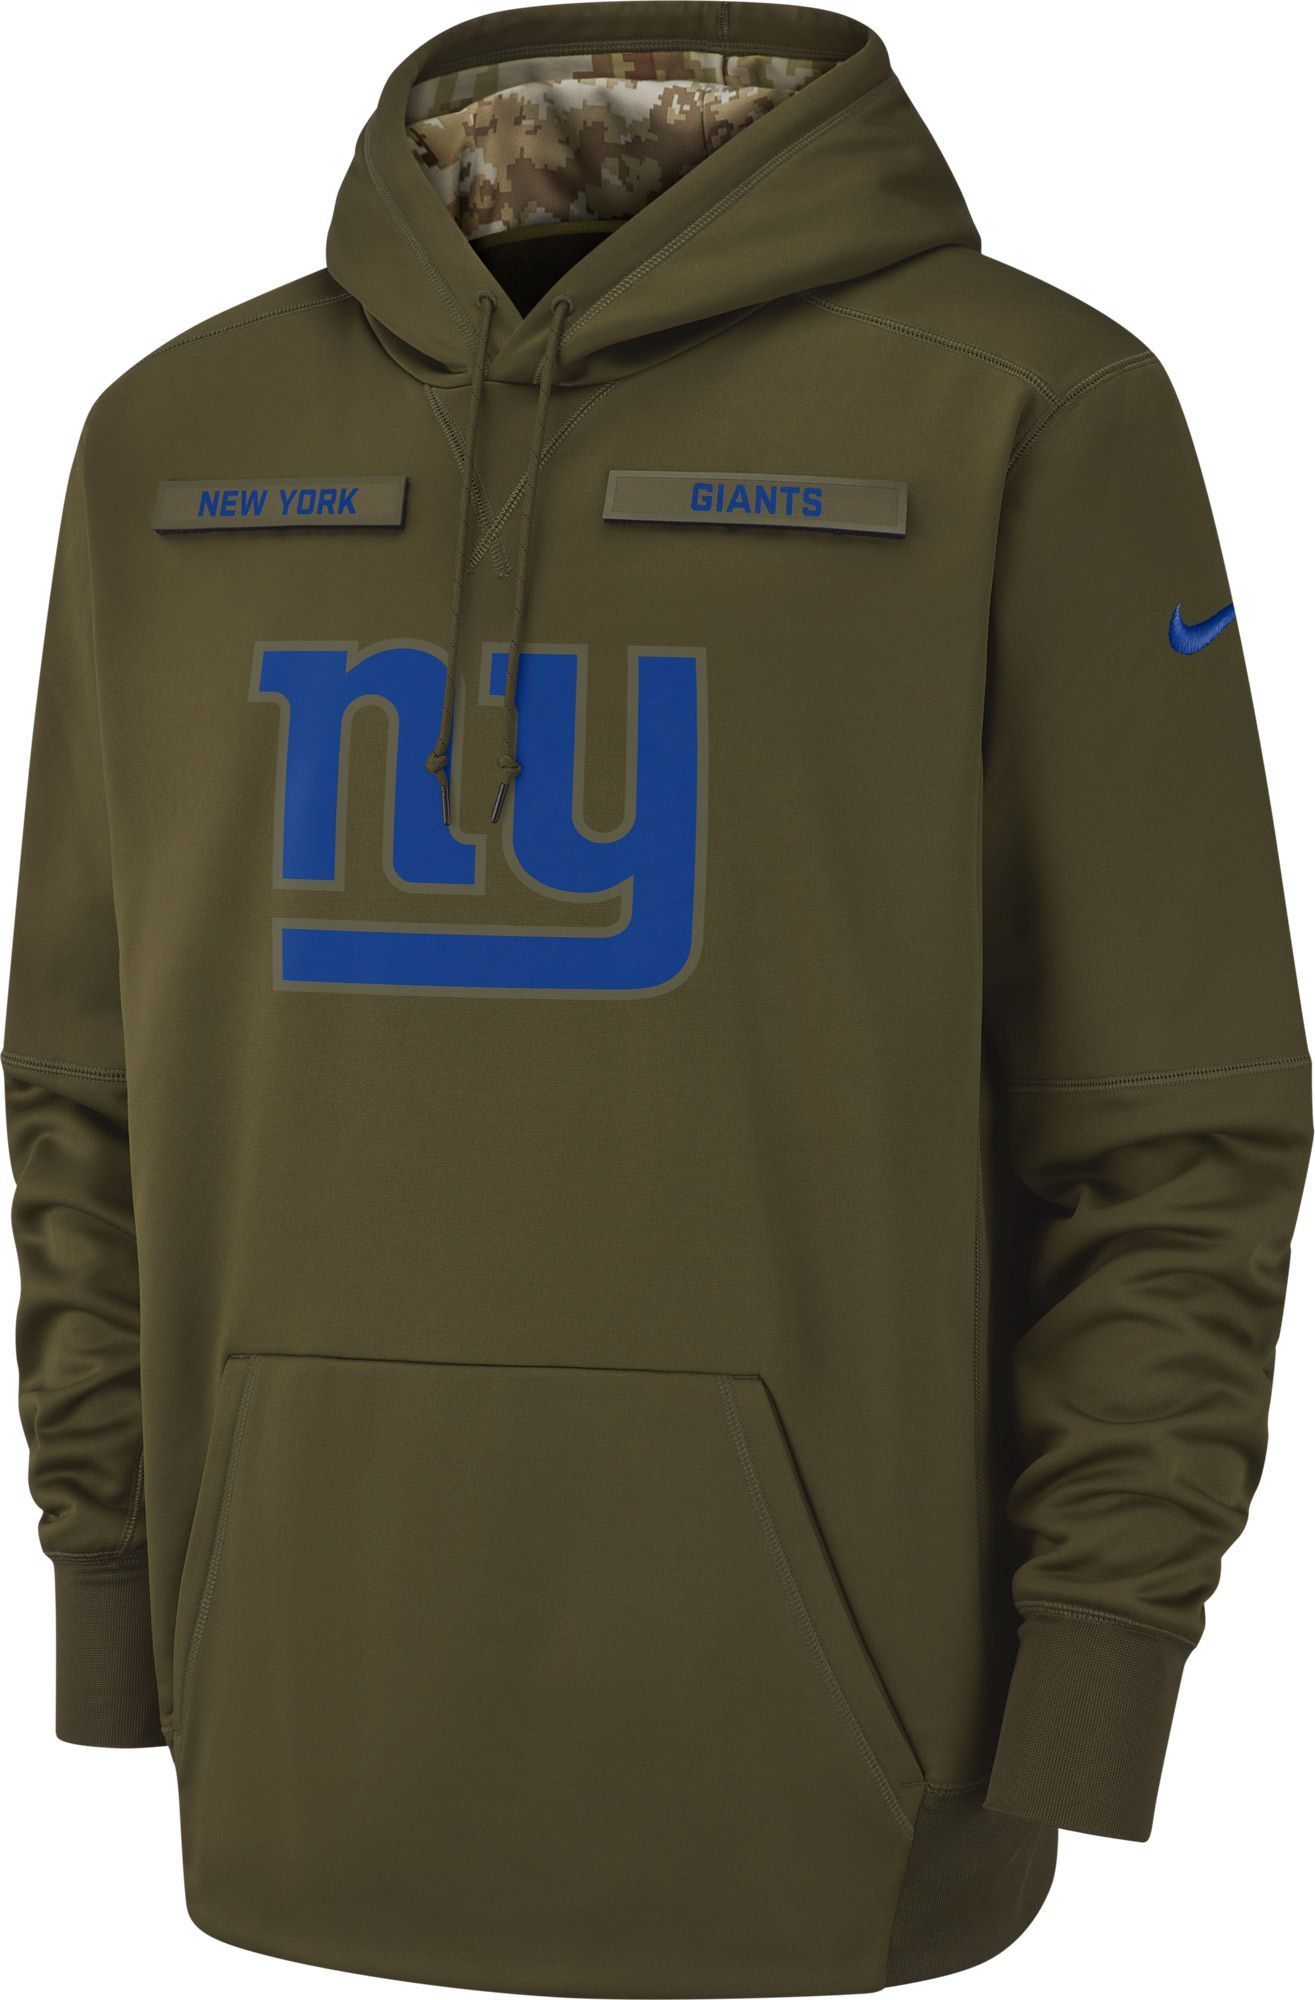 Nike Therma Just Do It Mens Hoodie | Modell's Sporting Goods